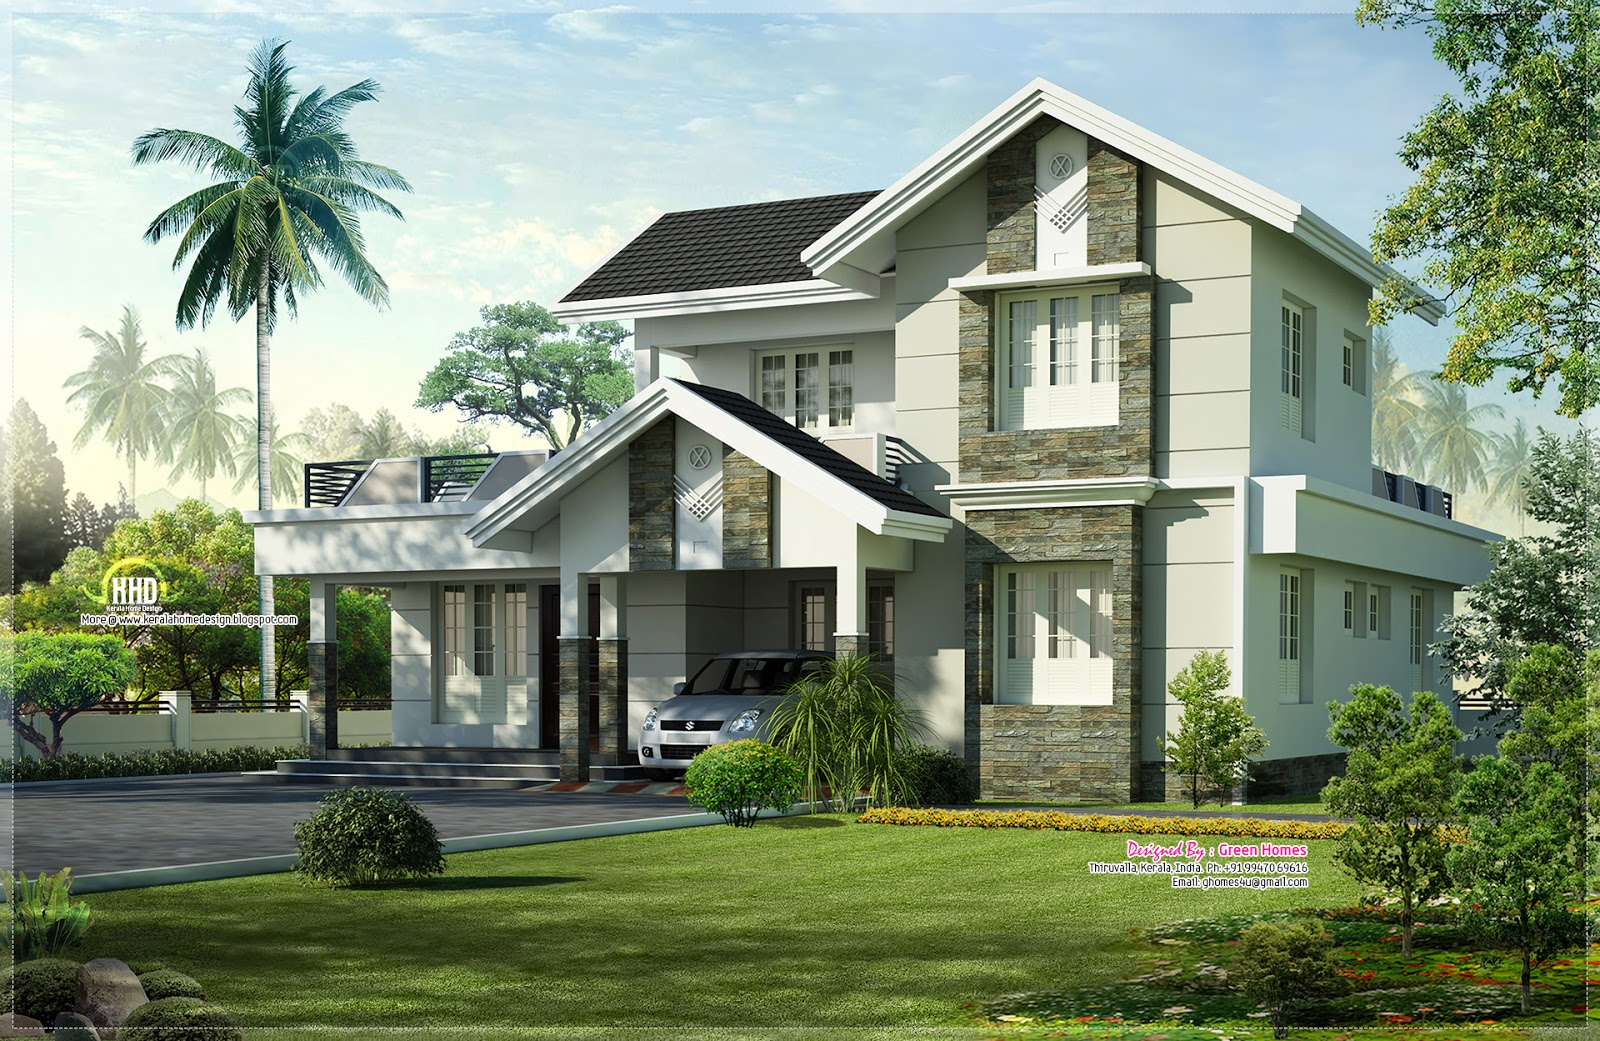 1975 nice home exterior design home kerala plans - Nice house designs ...